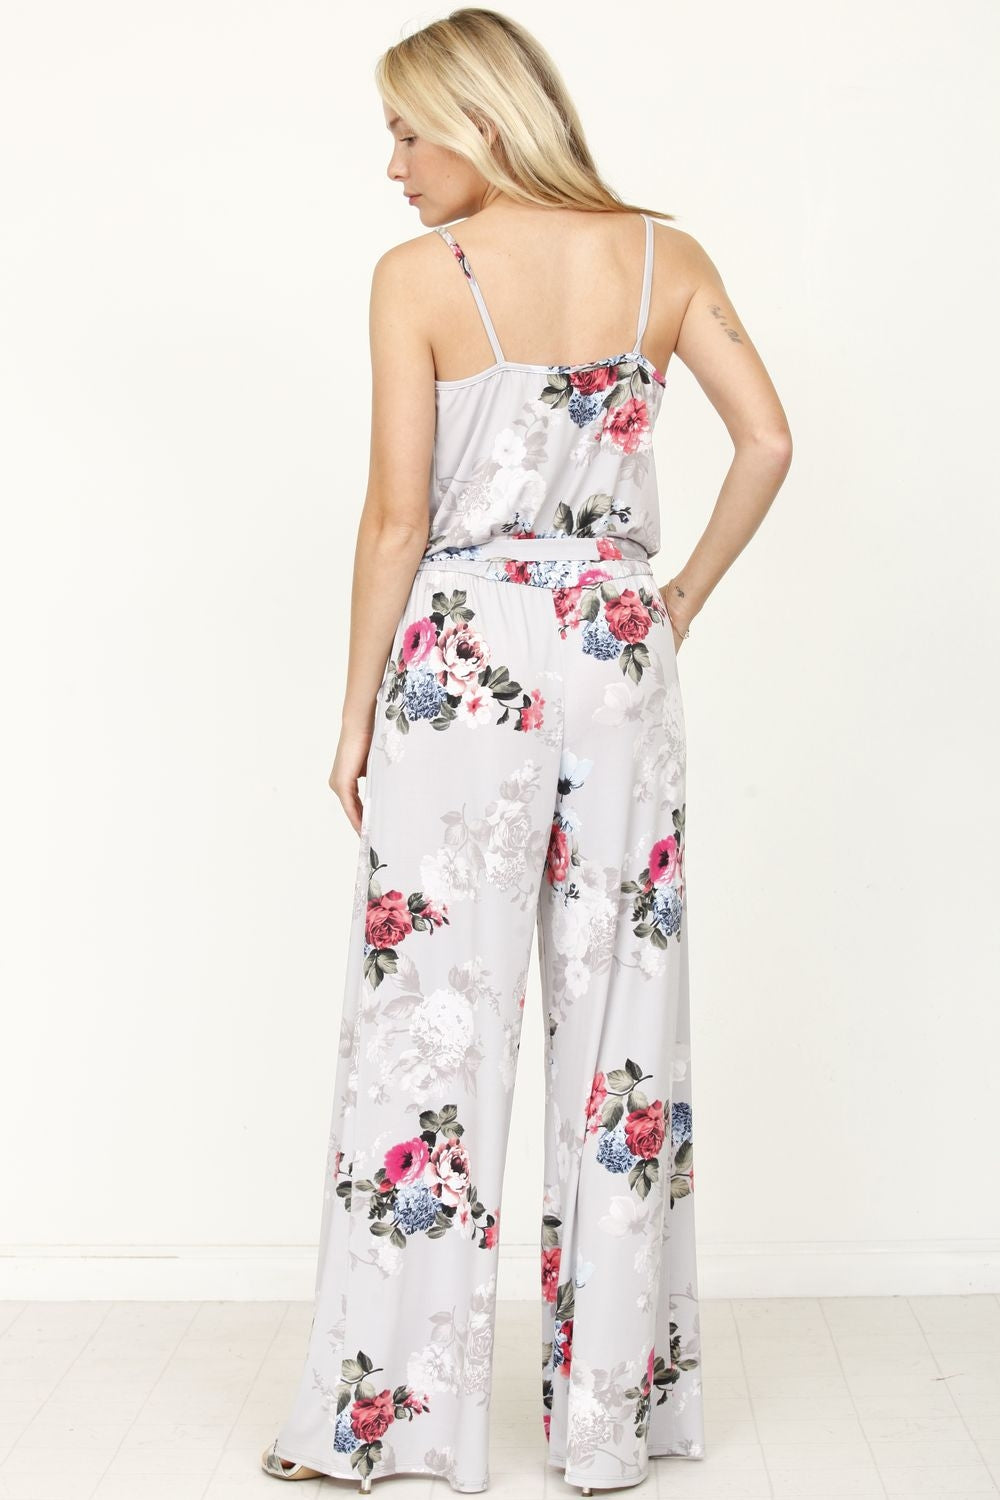 Grey Floral Surplice Spaghetti Strap Jumpsuit with Sash